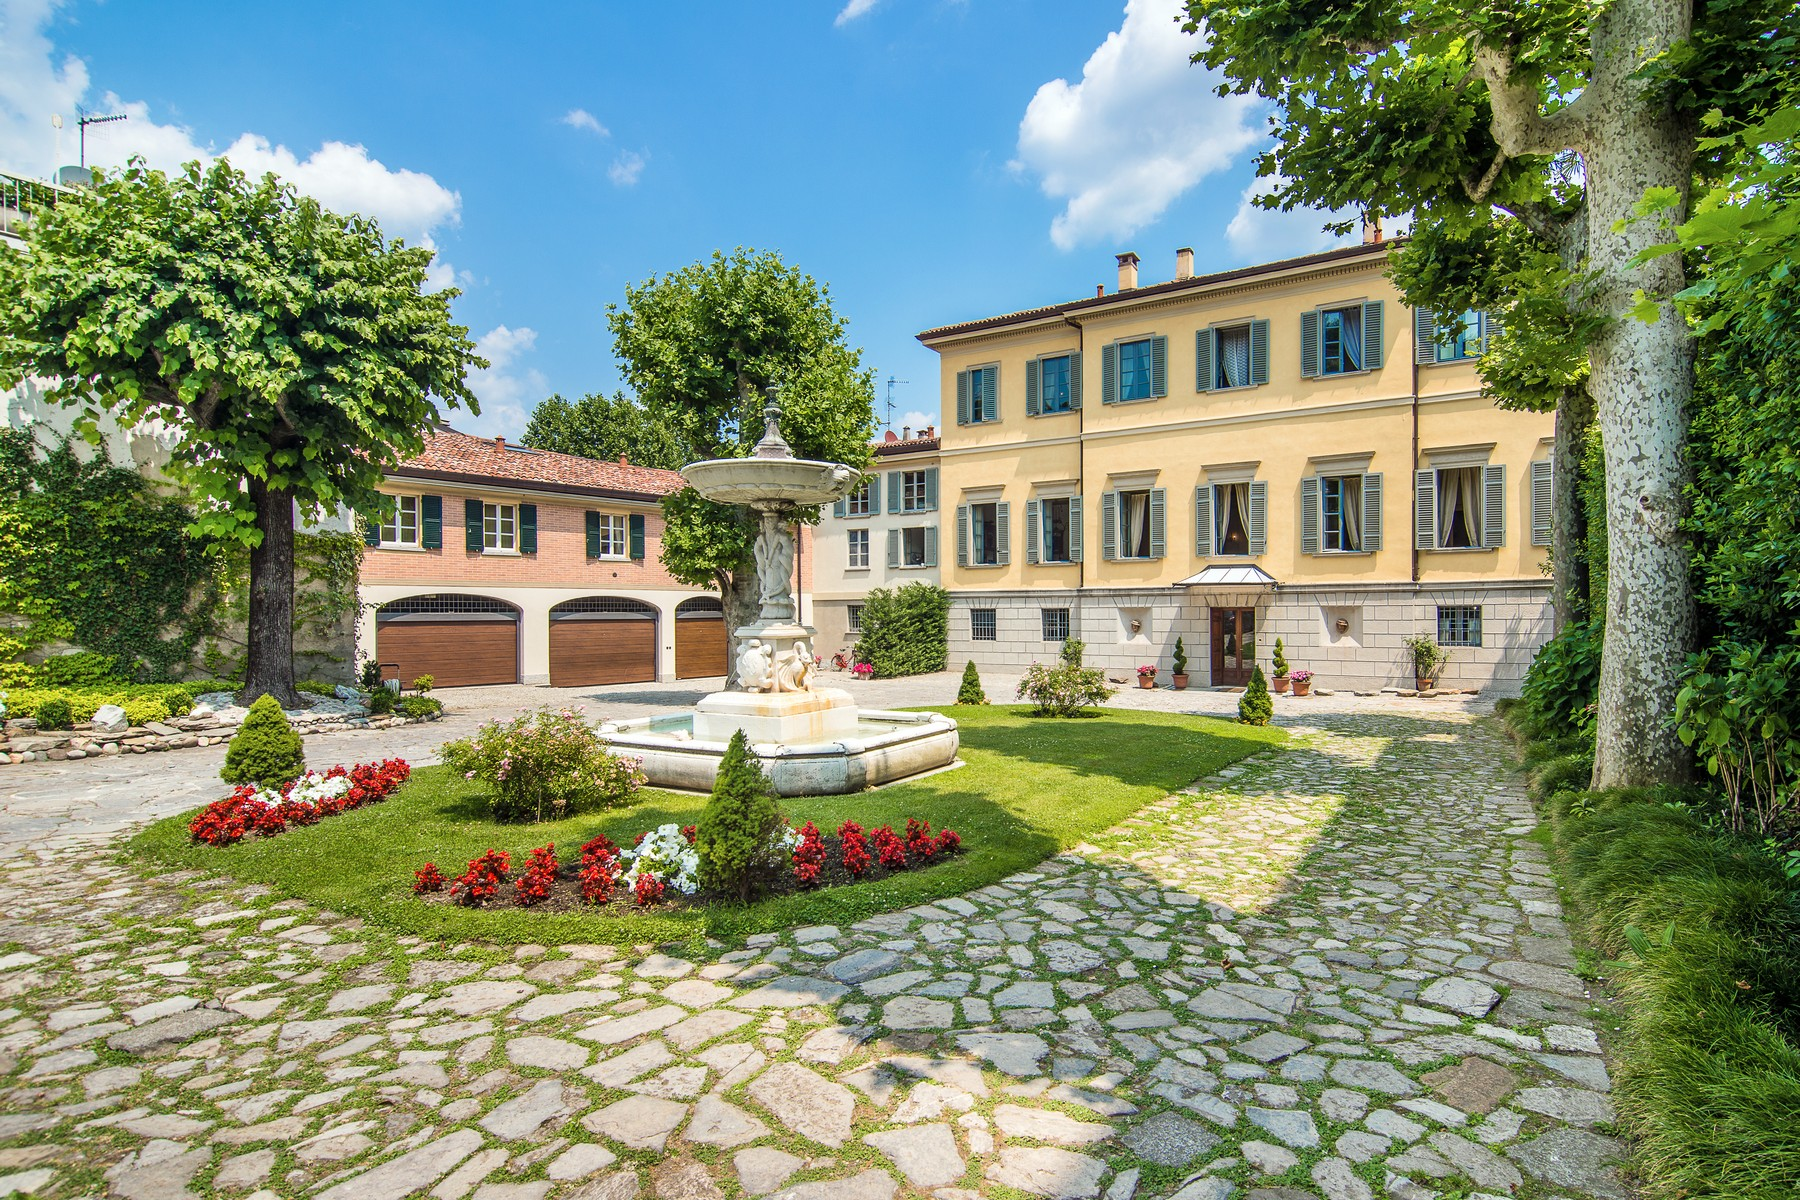 Multi-Family Home for Sale at Stunning property alongside Lake Como Passeggiata Villa Olmo Como, 22100 Italy